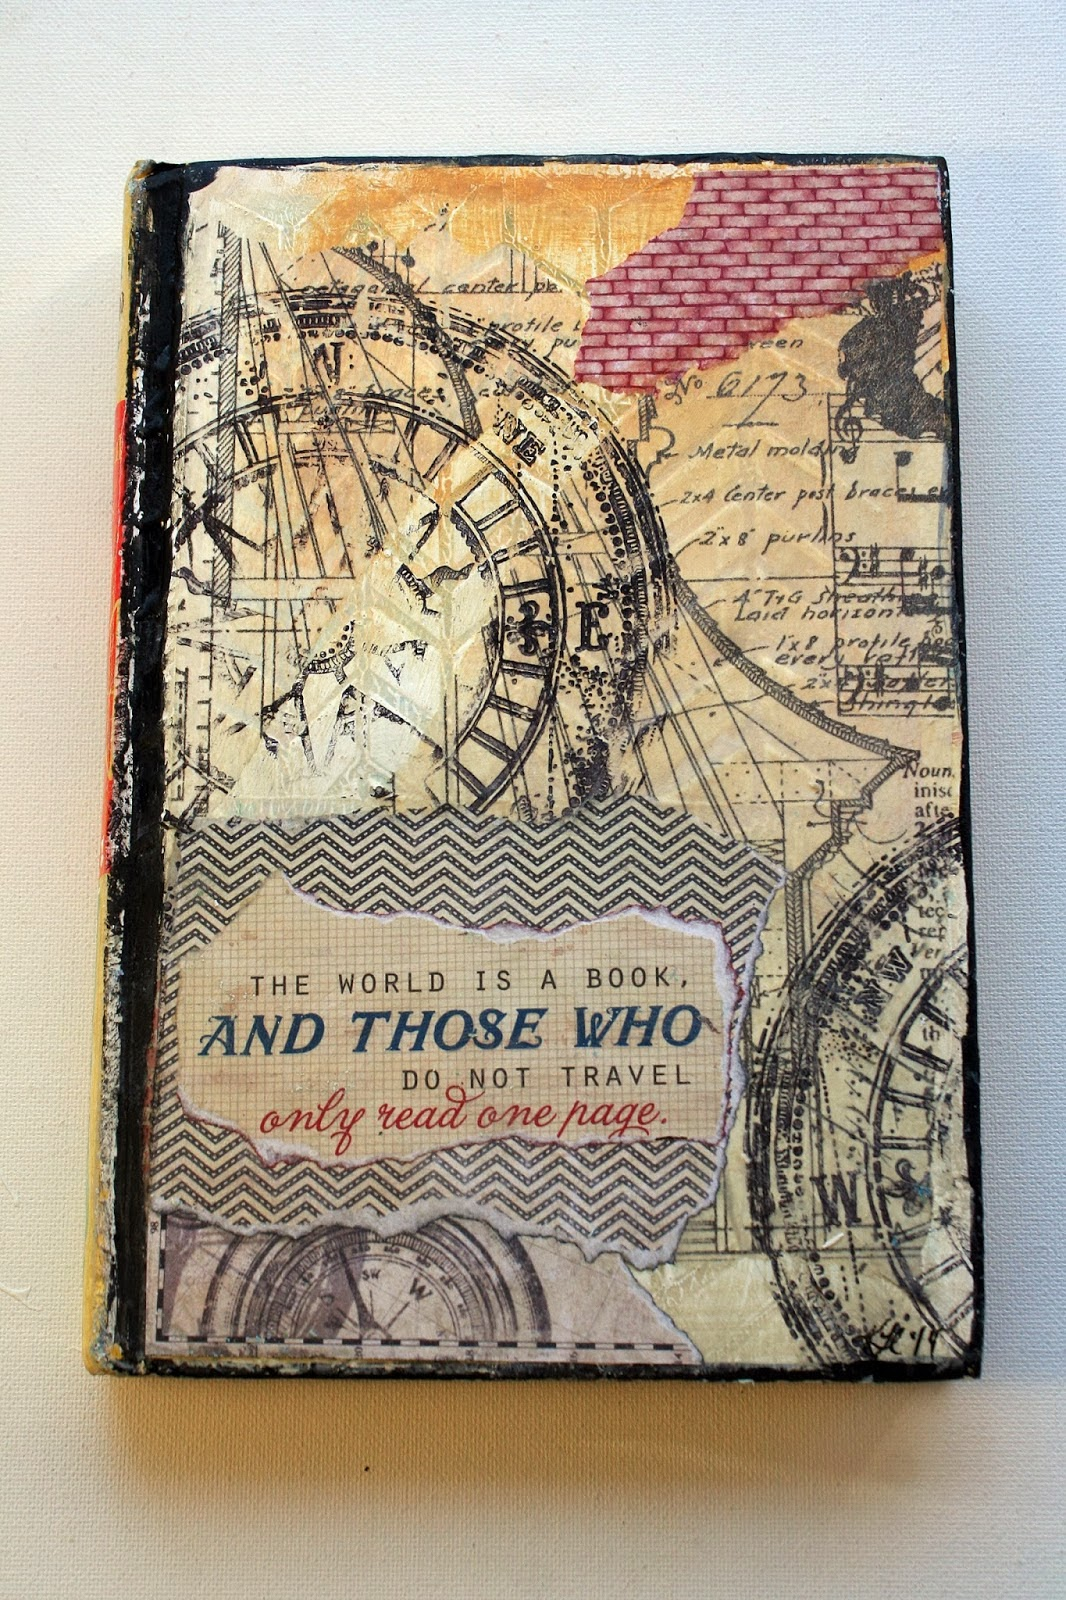 Karen's Altered Travel Journal